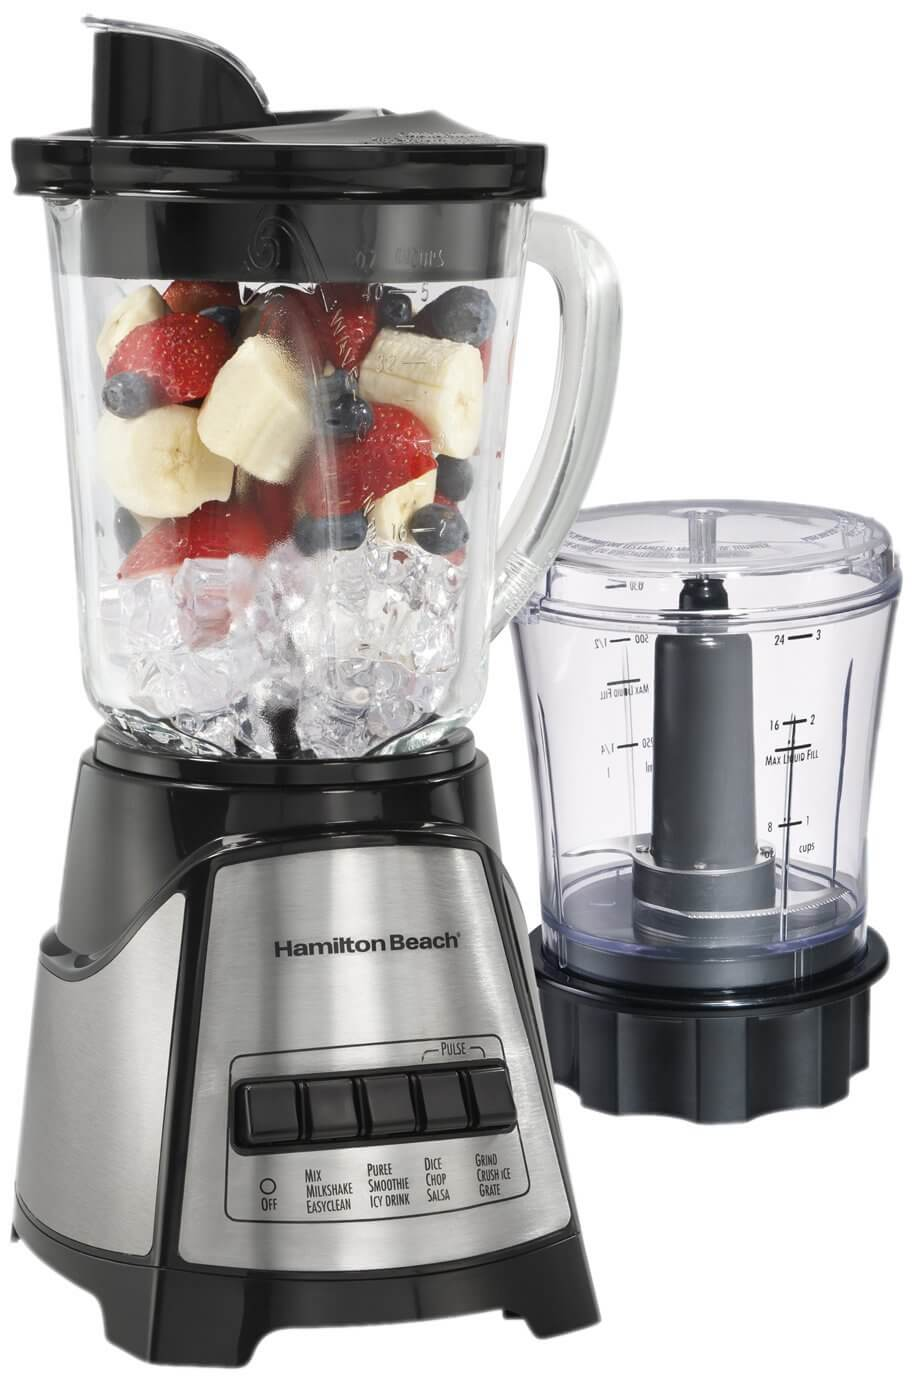 Why You Should Buy a Hamilton Beach Blender?